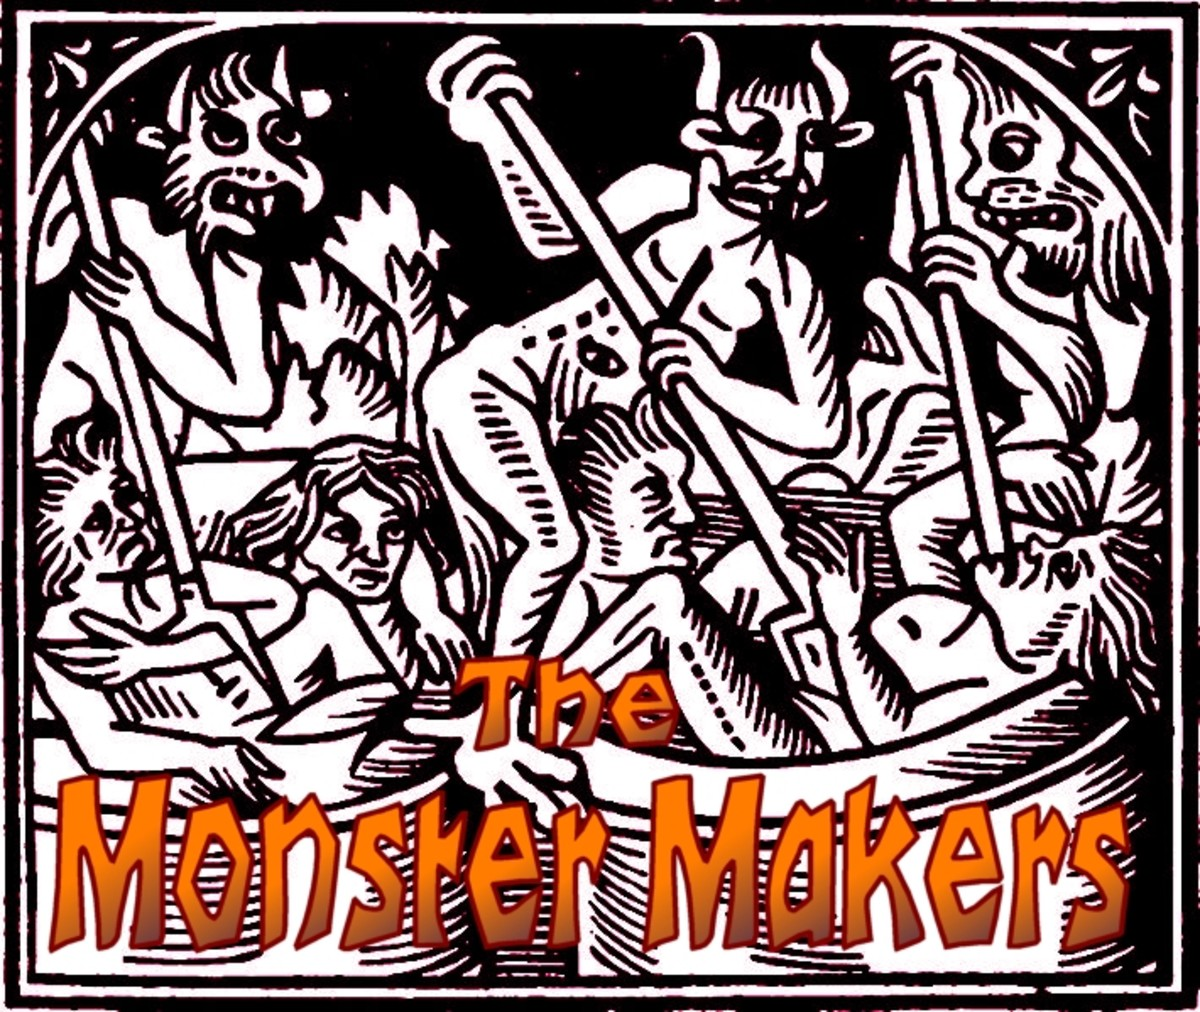 Horror of the Monster Makers - Real Life Freaks made by Frankensteins: Mystery Files